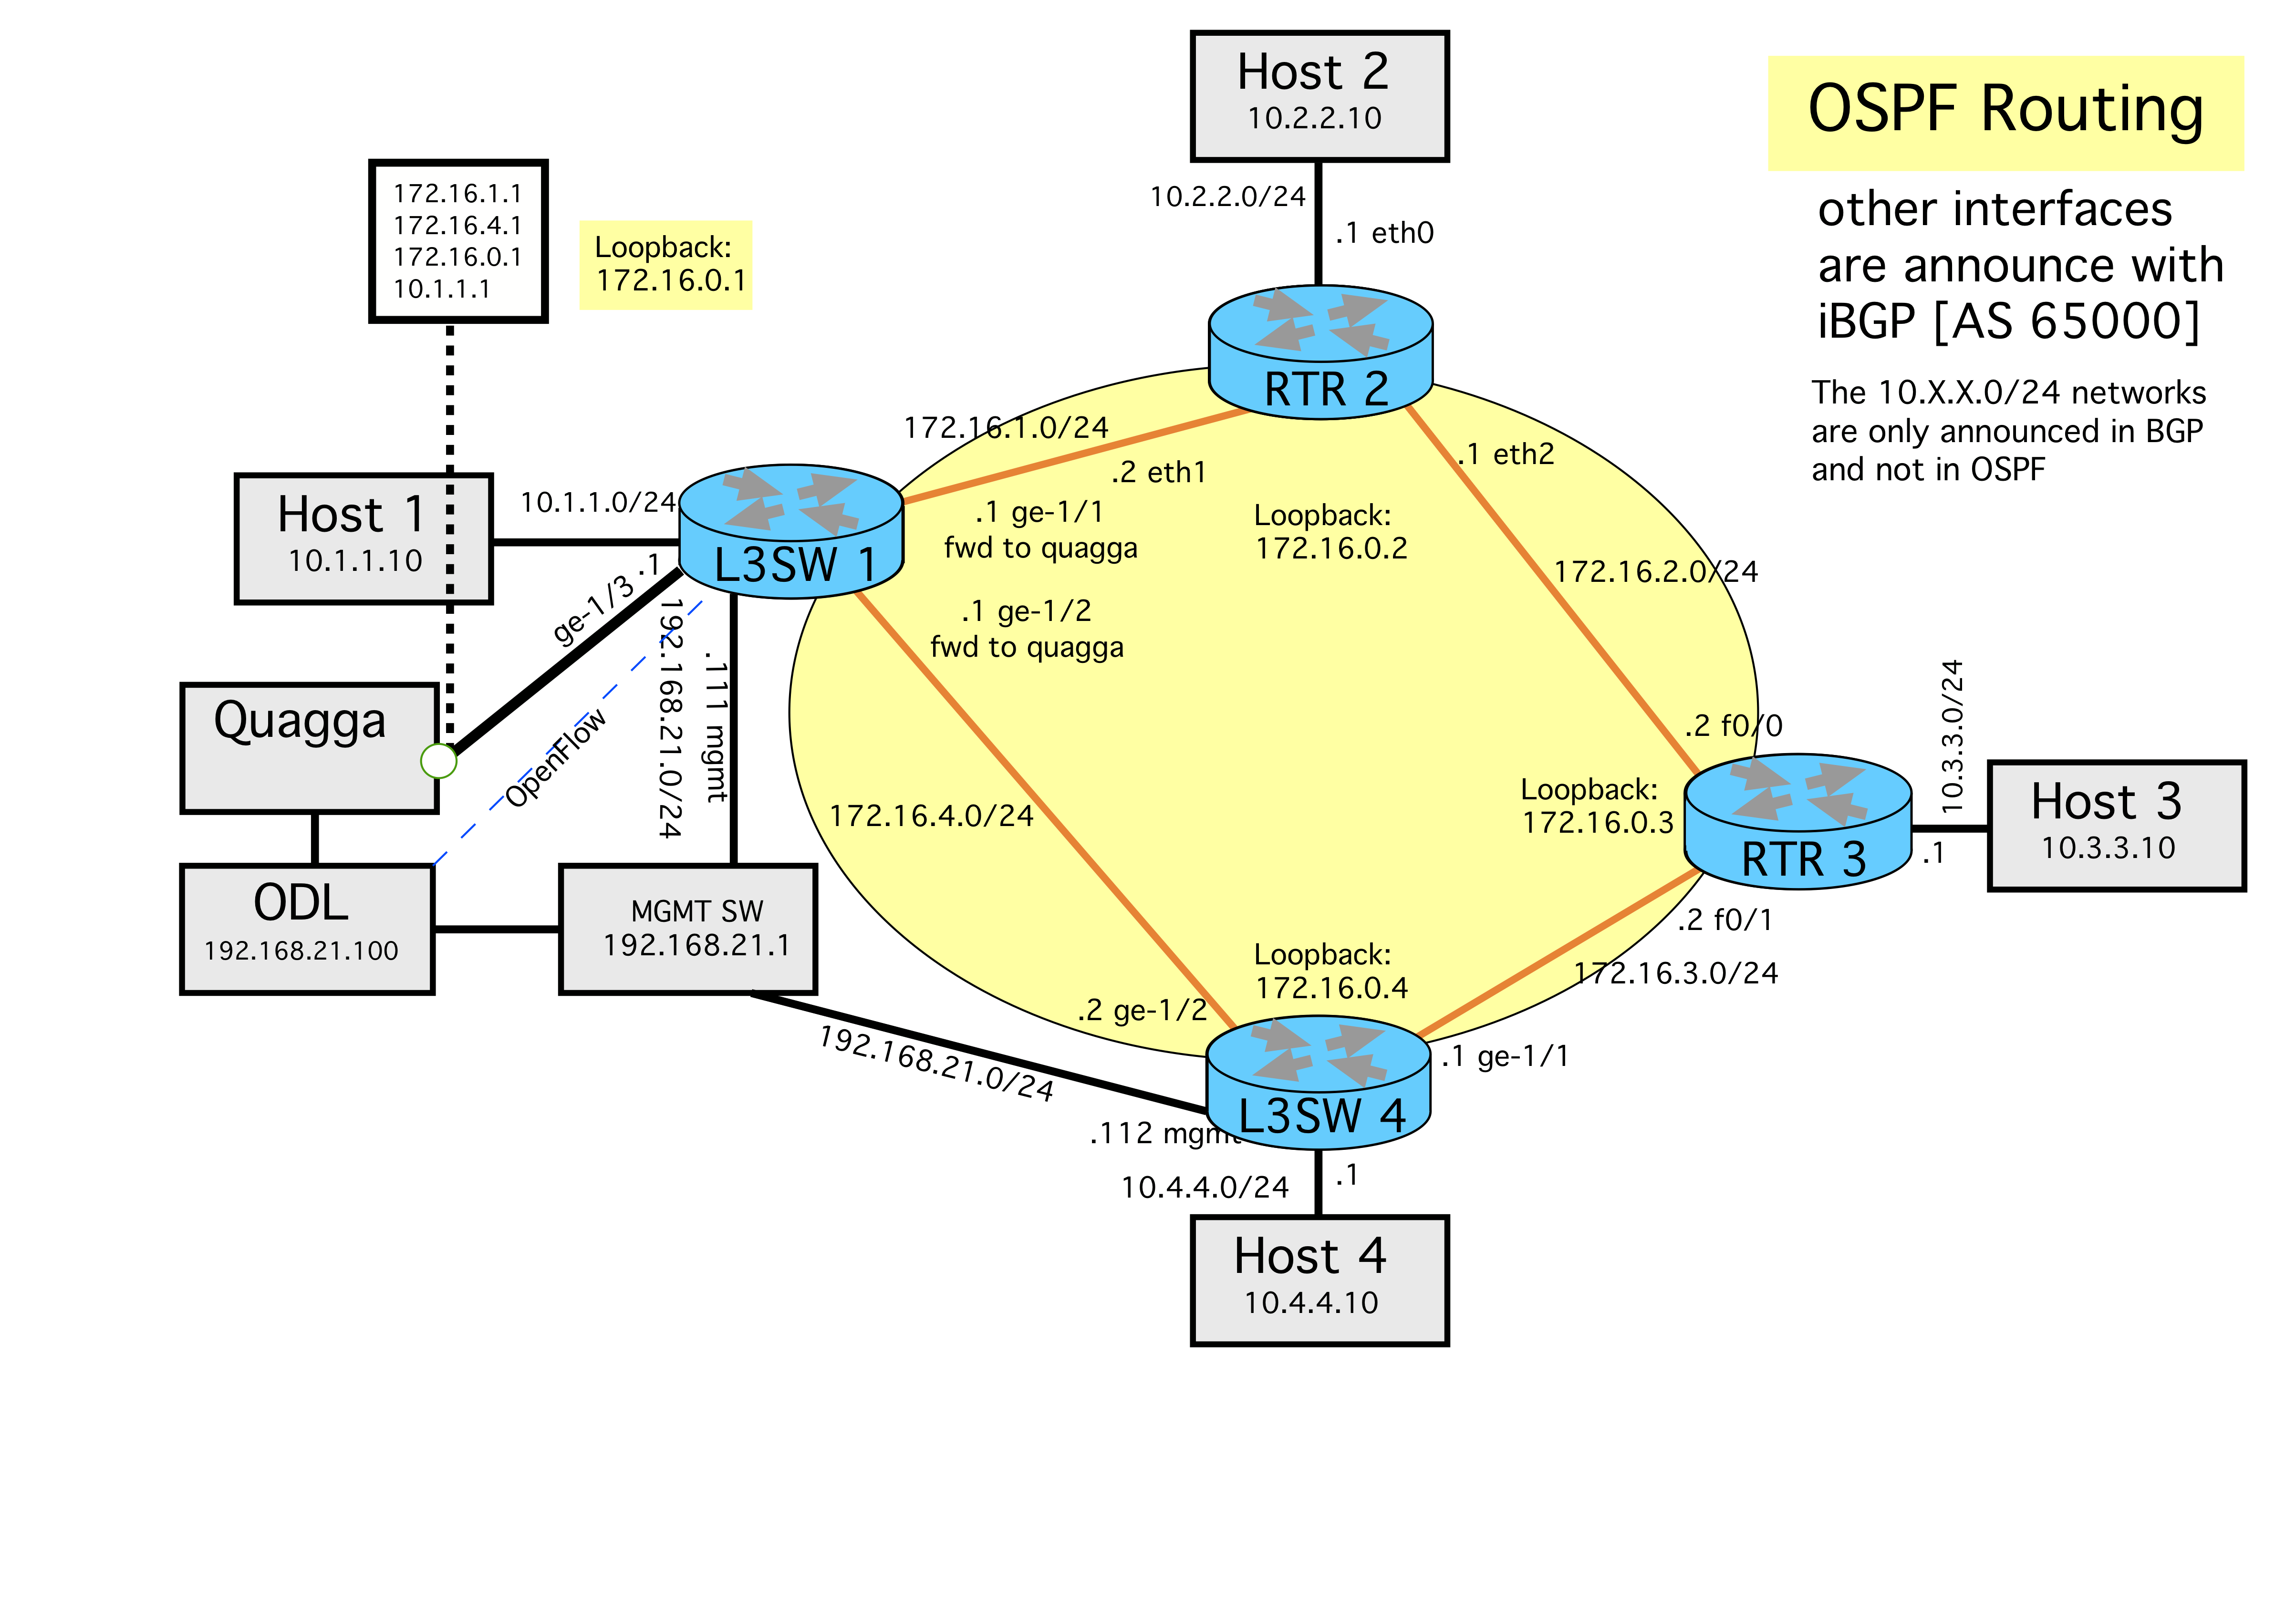 Sdn Migration Tutorial Adding A Router Cisco Diagram We Have Configured The In Following Way Running Ospf On Link To Pica8 And Peering With Both Quagga Second